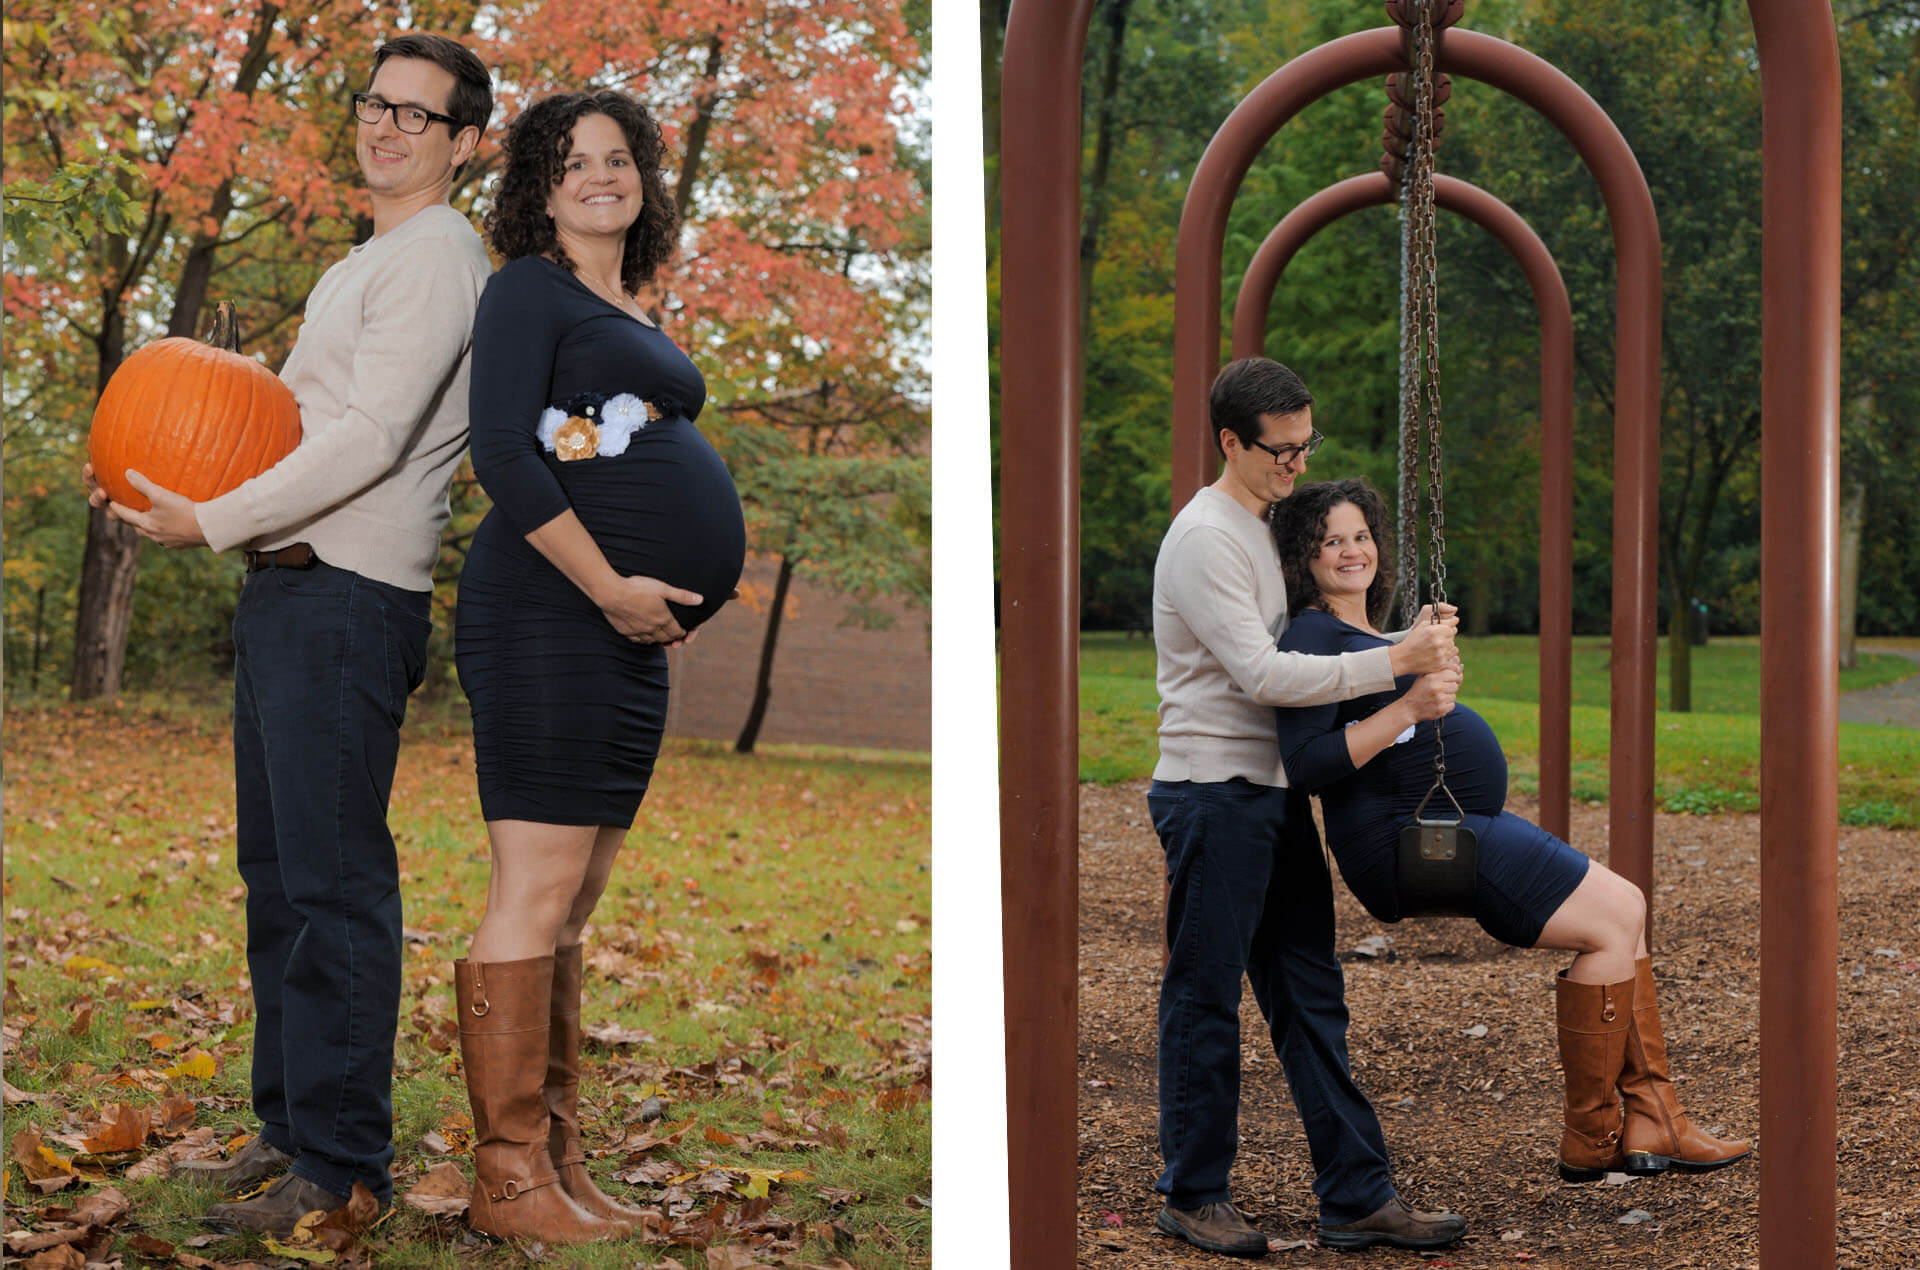 Best Detroit pregnant photographer's style of photographing fun little moments, like this husband and wife who are expecting twins and having fun coming up with twin type portraits in the metro Detroit, Michigan.